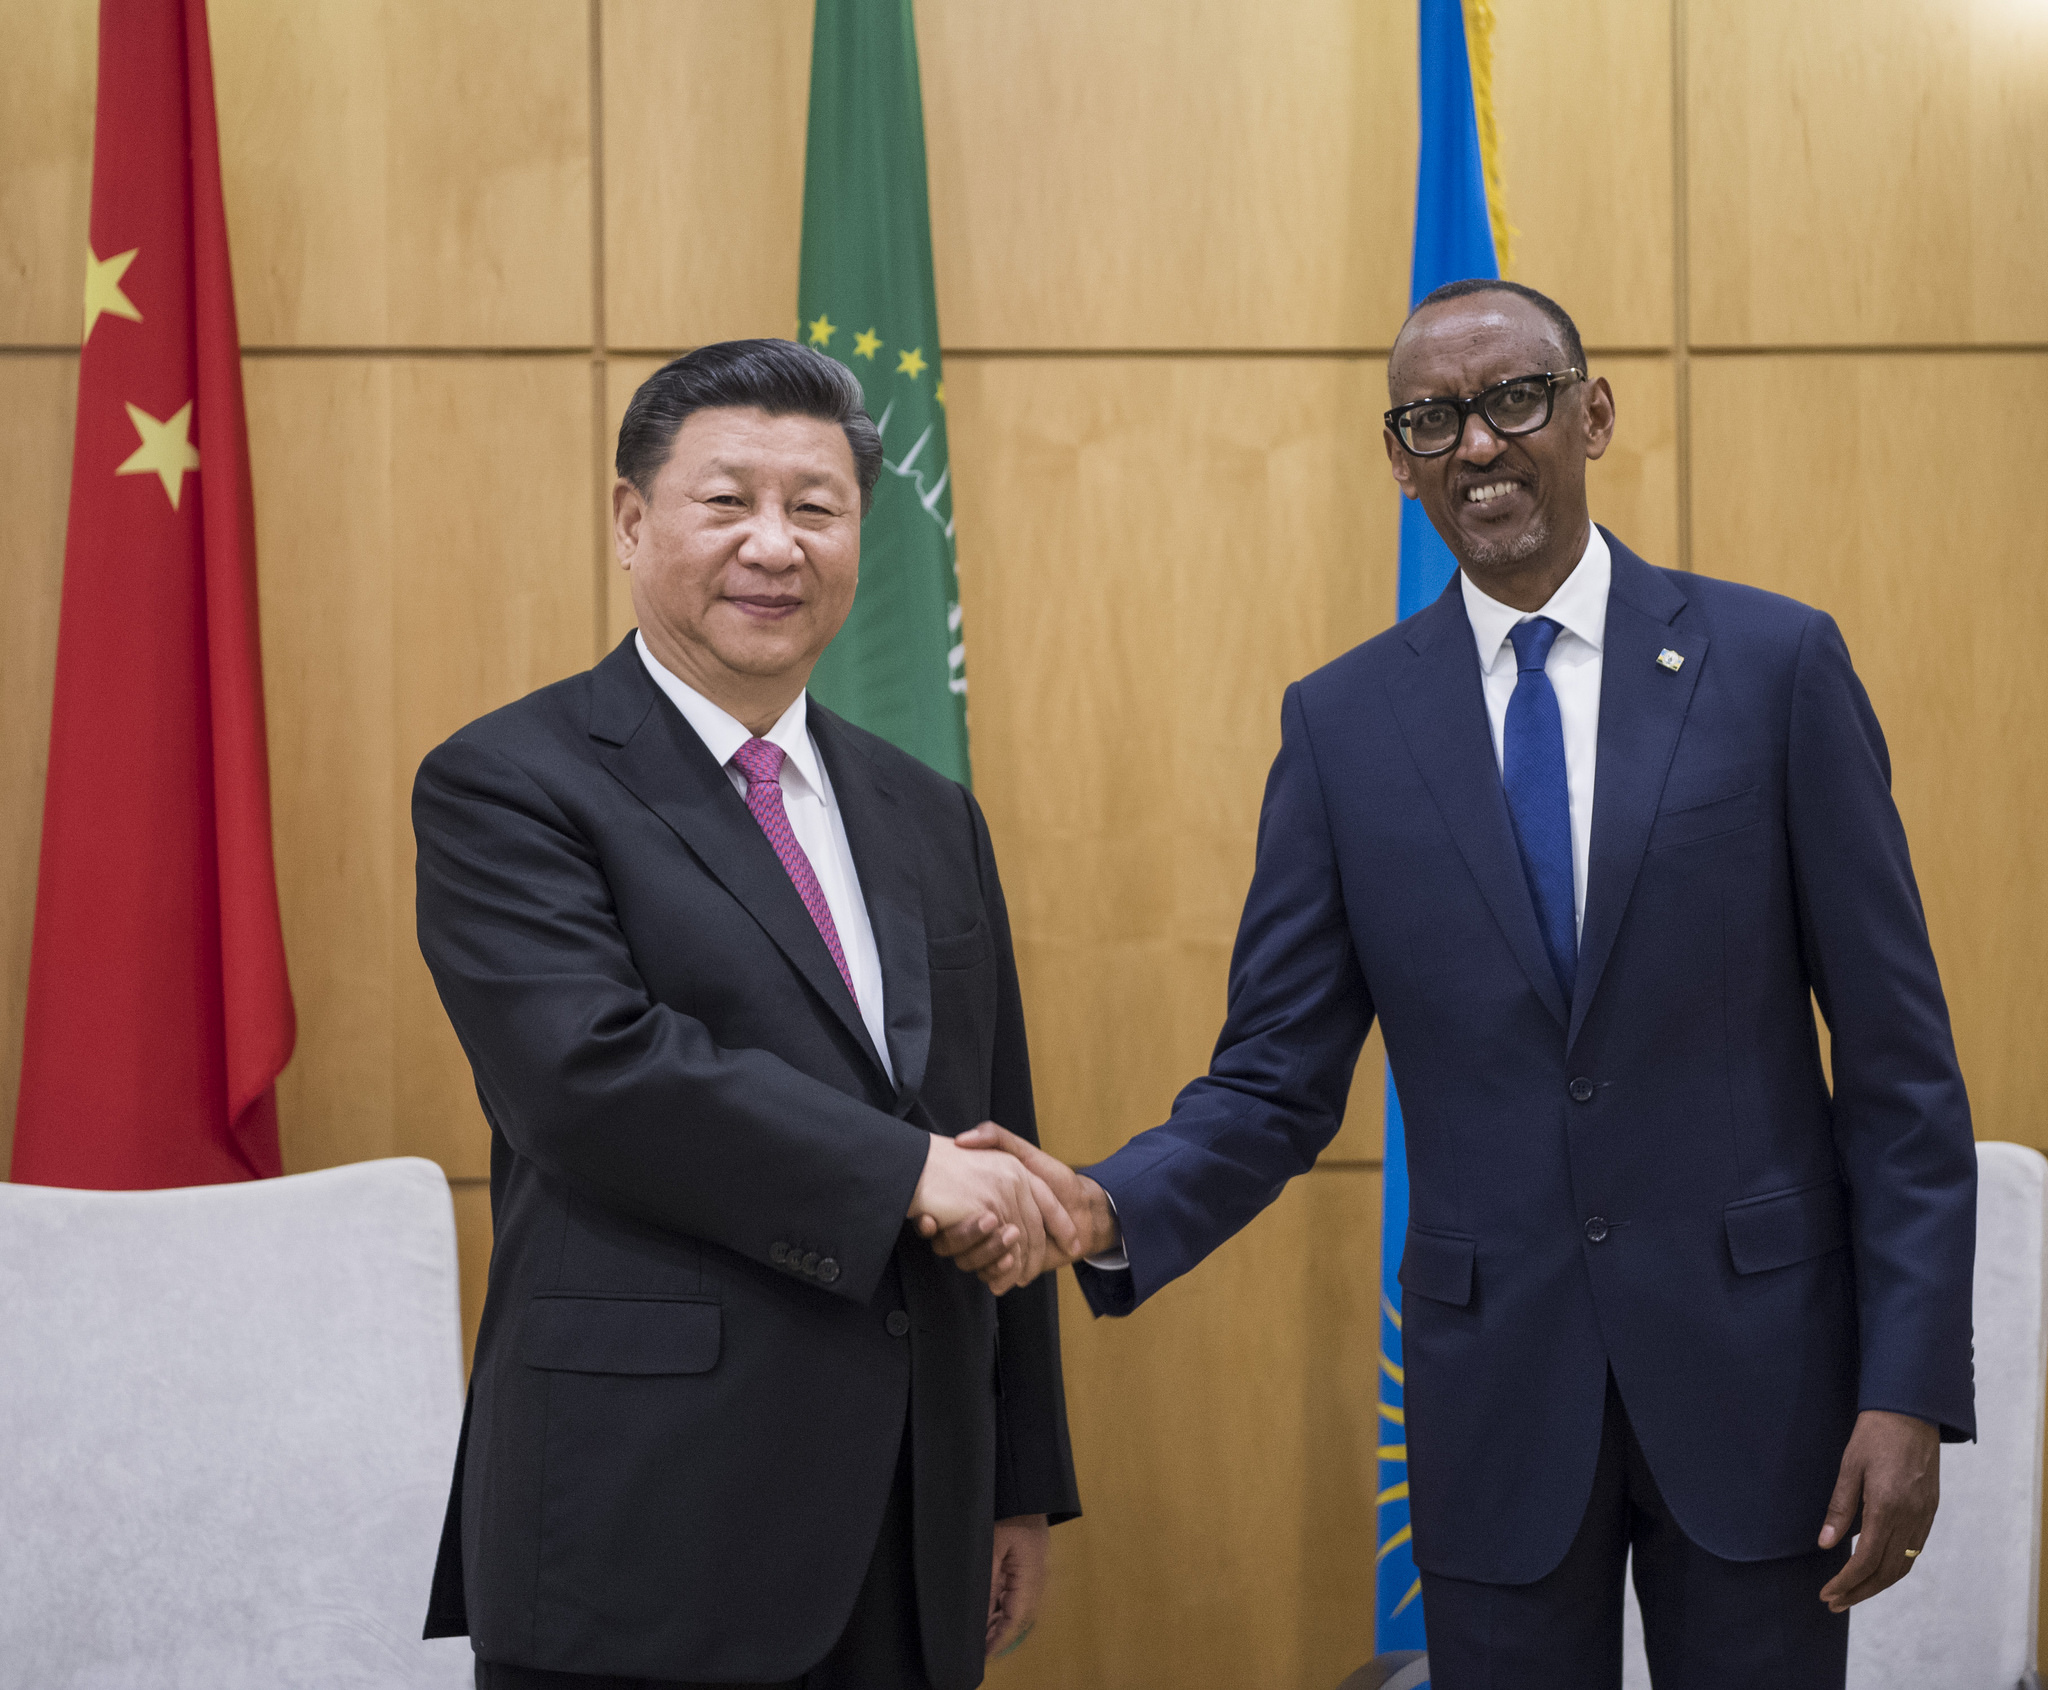 President Kagame (right) welcoming president Jinping during his visit in Rwanda in July 2018